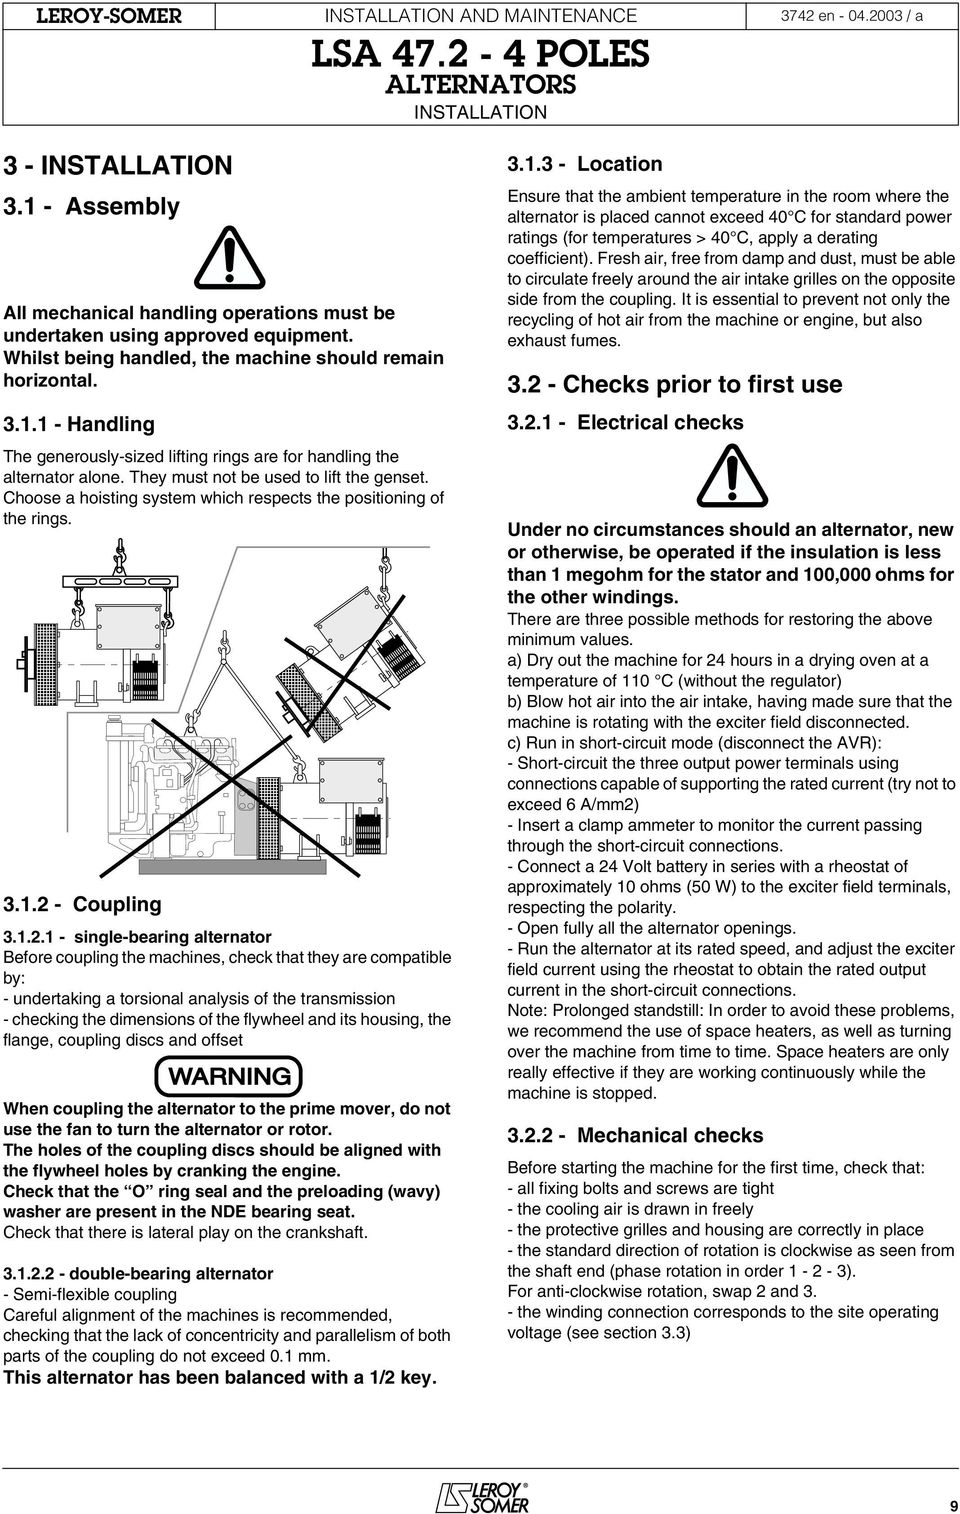 Users Guide And Maintenance Manual Leroy Somer Alternators Lsa Parts Diagram Alternator Mounting Coupling 312 11 Installation Terminal Connection Diagrams